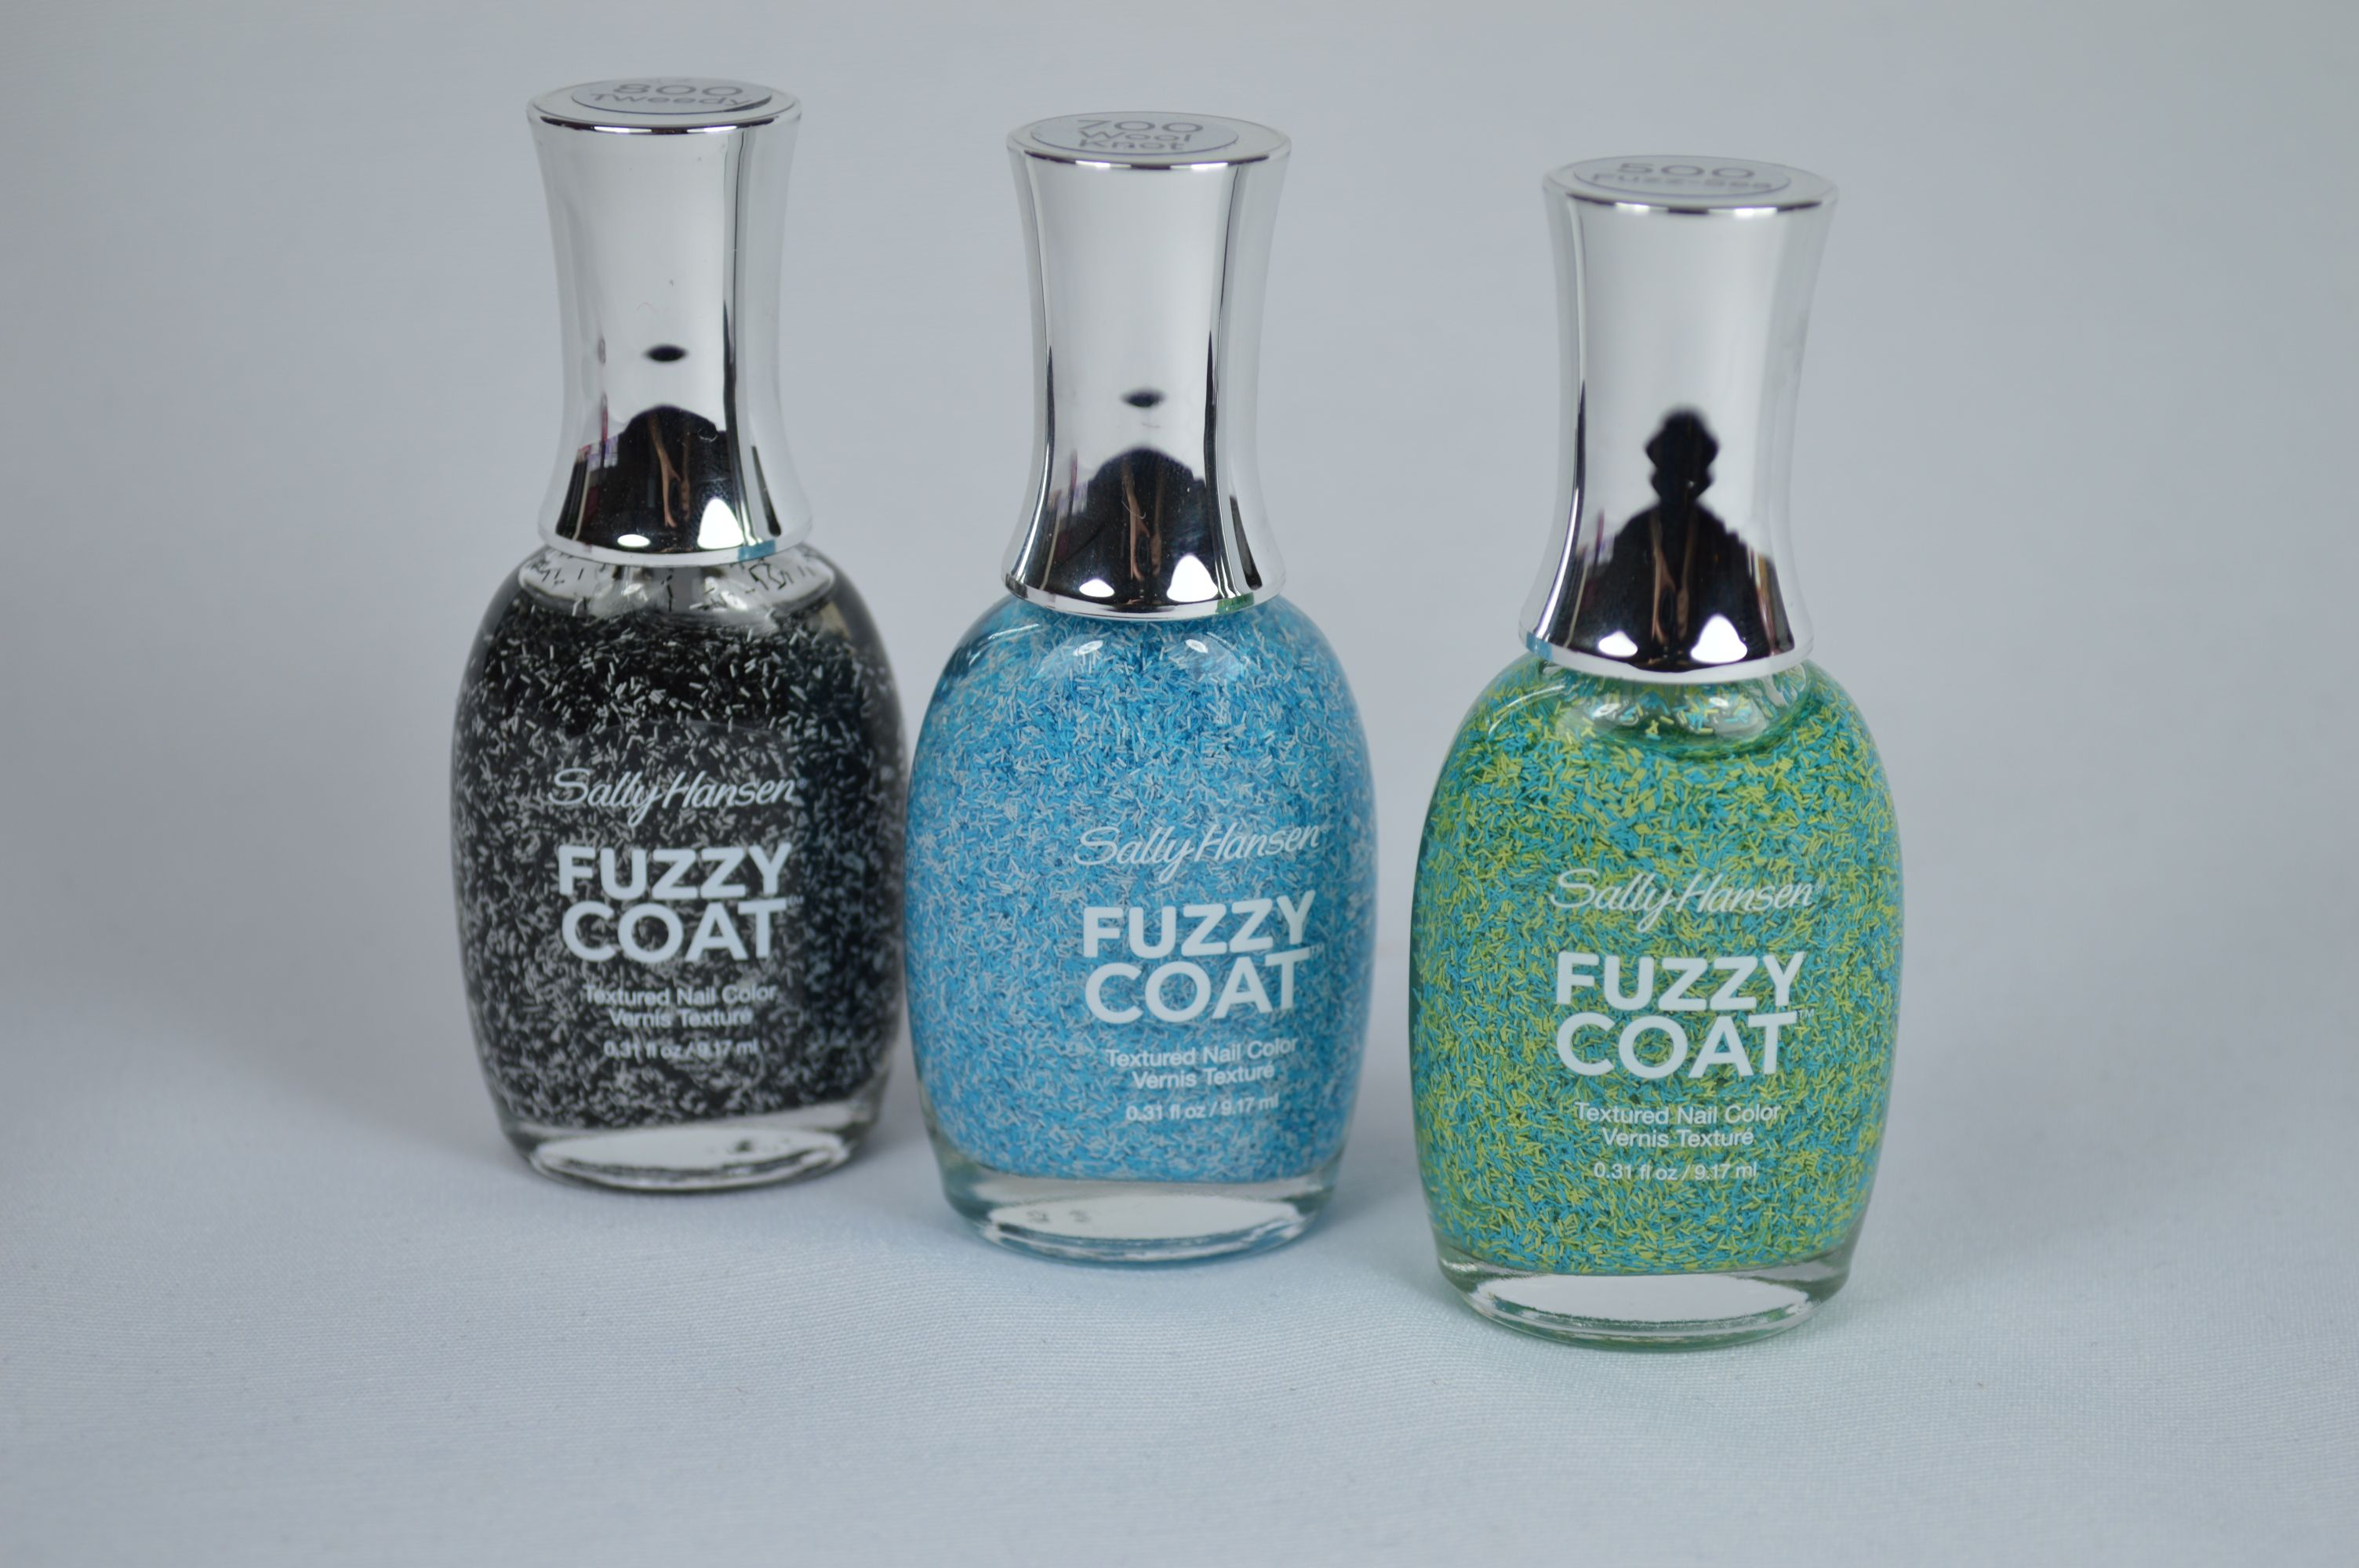 Sally Hansen Fuzzy Coats